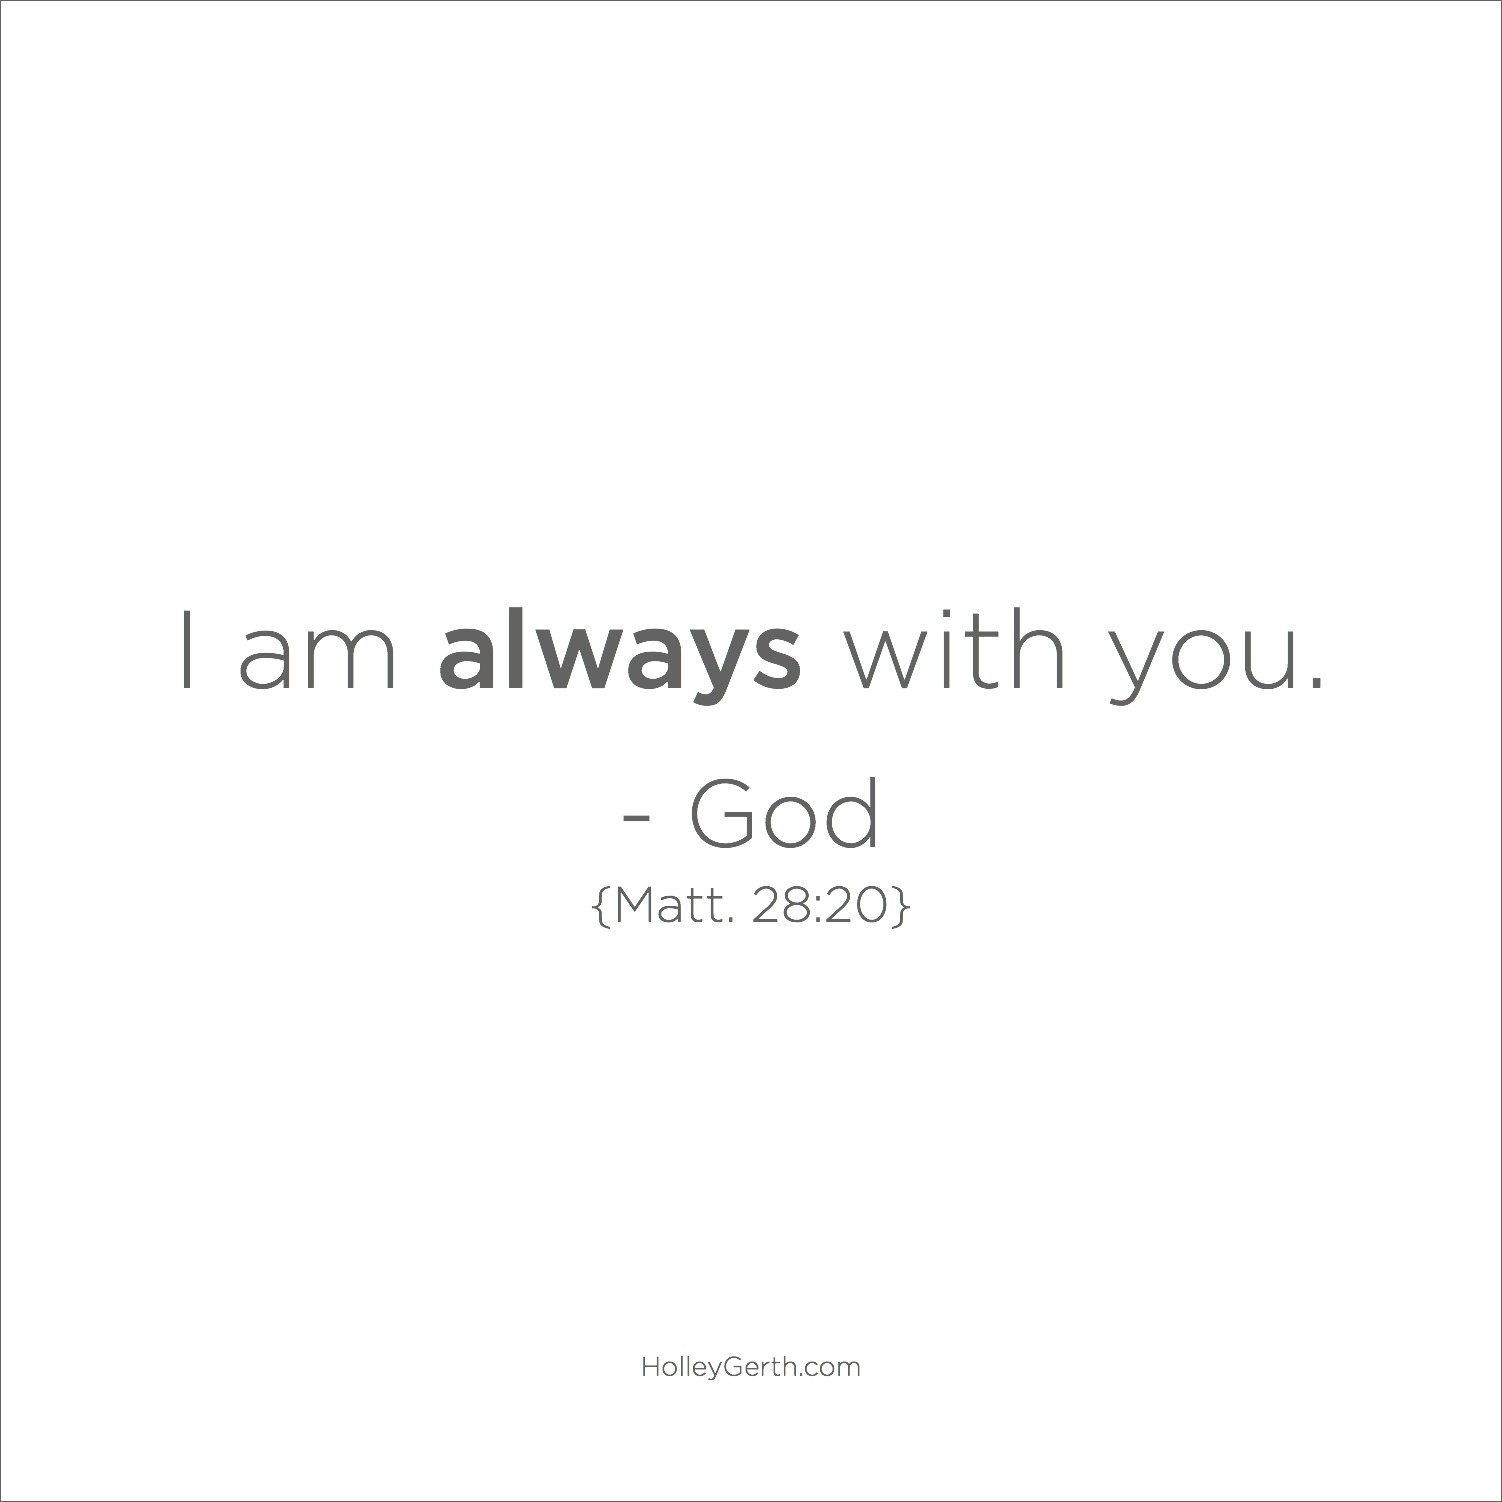 I am always with you.